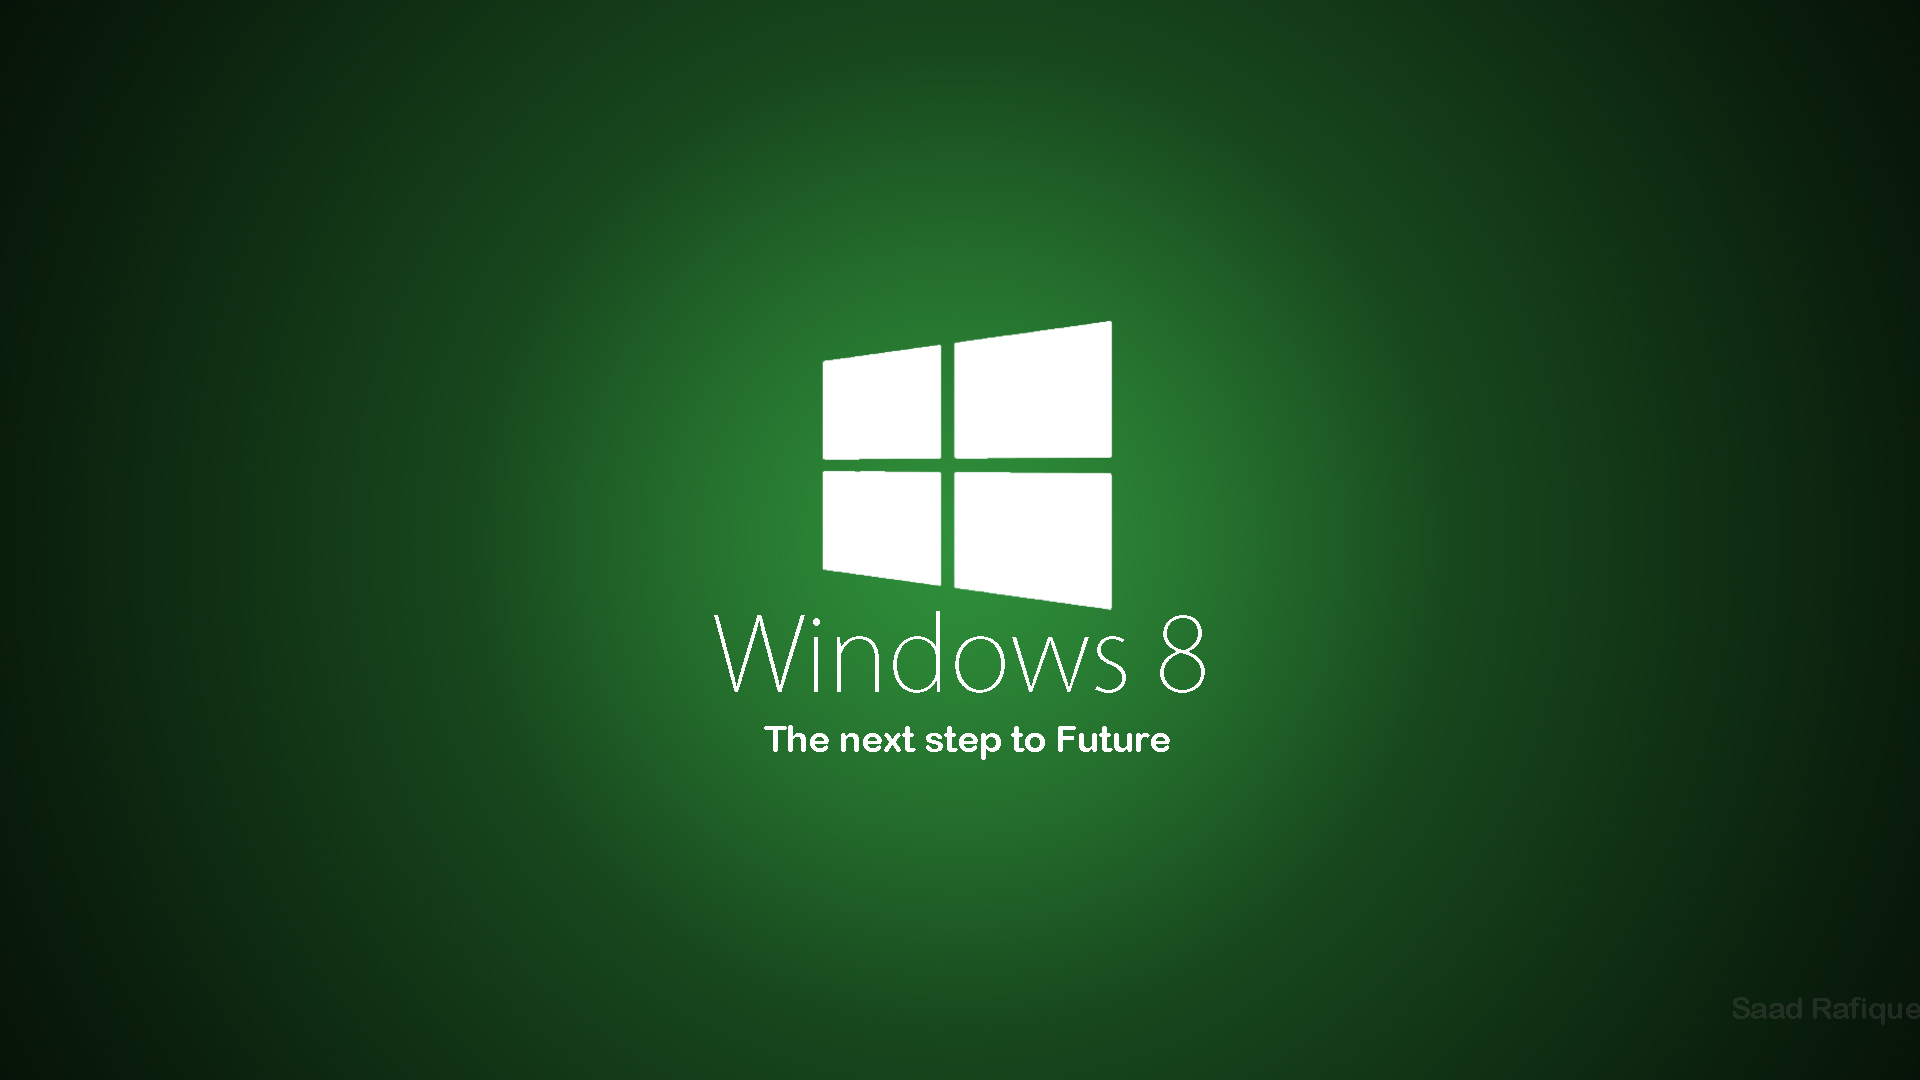 windows 8 wallpaper 40